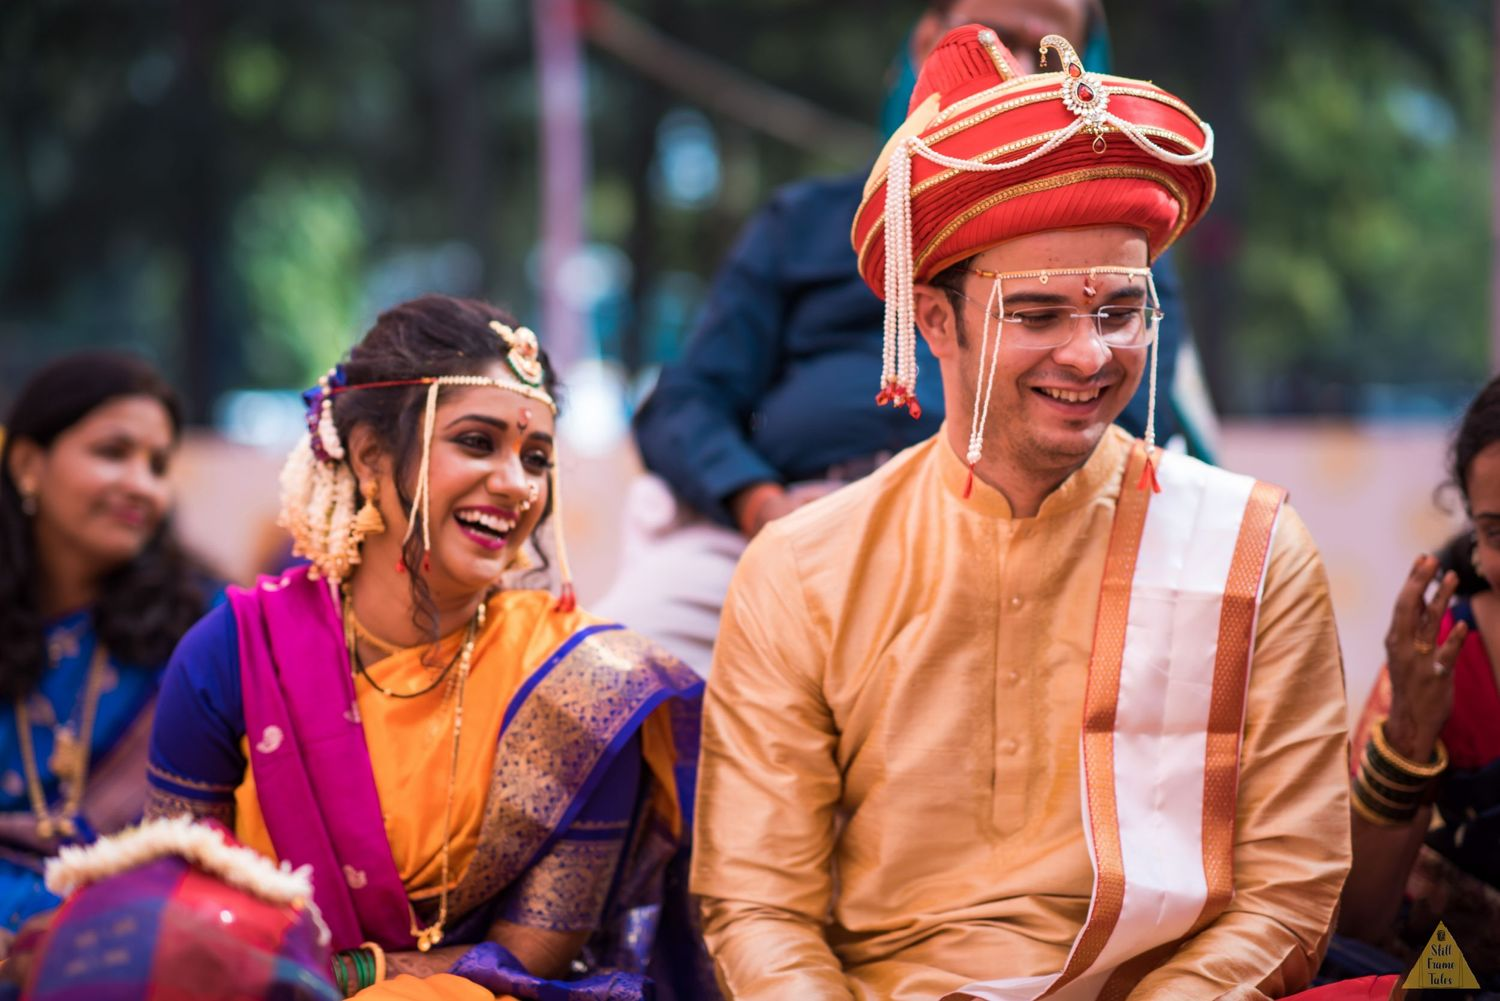 Couple sharing some candid moments at a wedding day puja